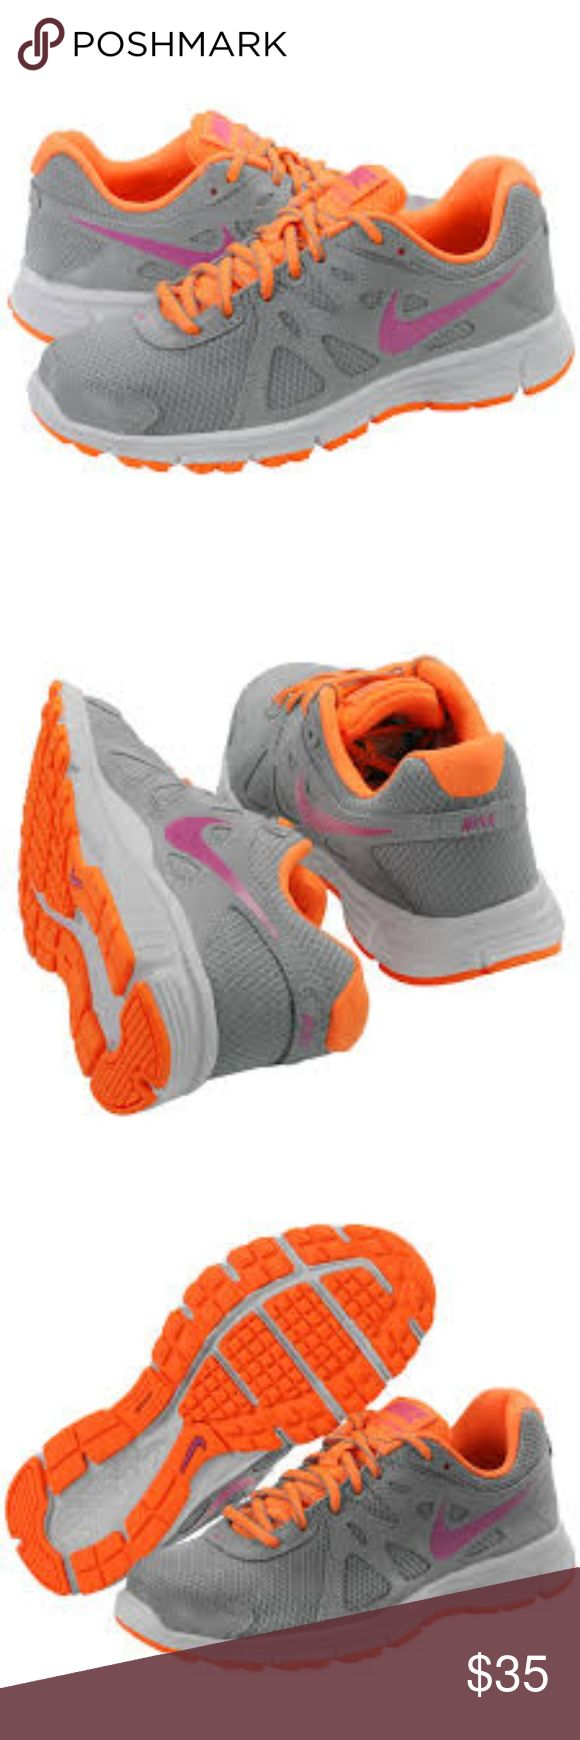 NIKE Revolution 2 Running Athletic Sneaker Nike Revolution 2 Running Shoe Size 7 EUC! Very slight scuffing near toe of shoe, otherwise great(used) condition. I wore maybe 3-4 times. Nike Shoes Sneakers